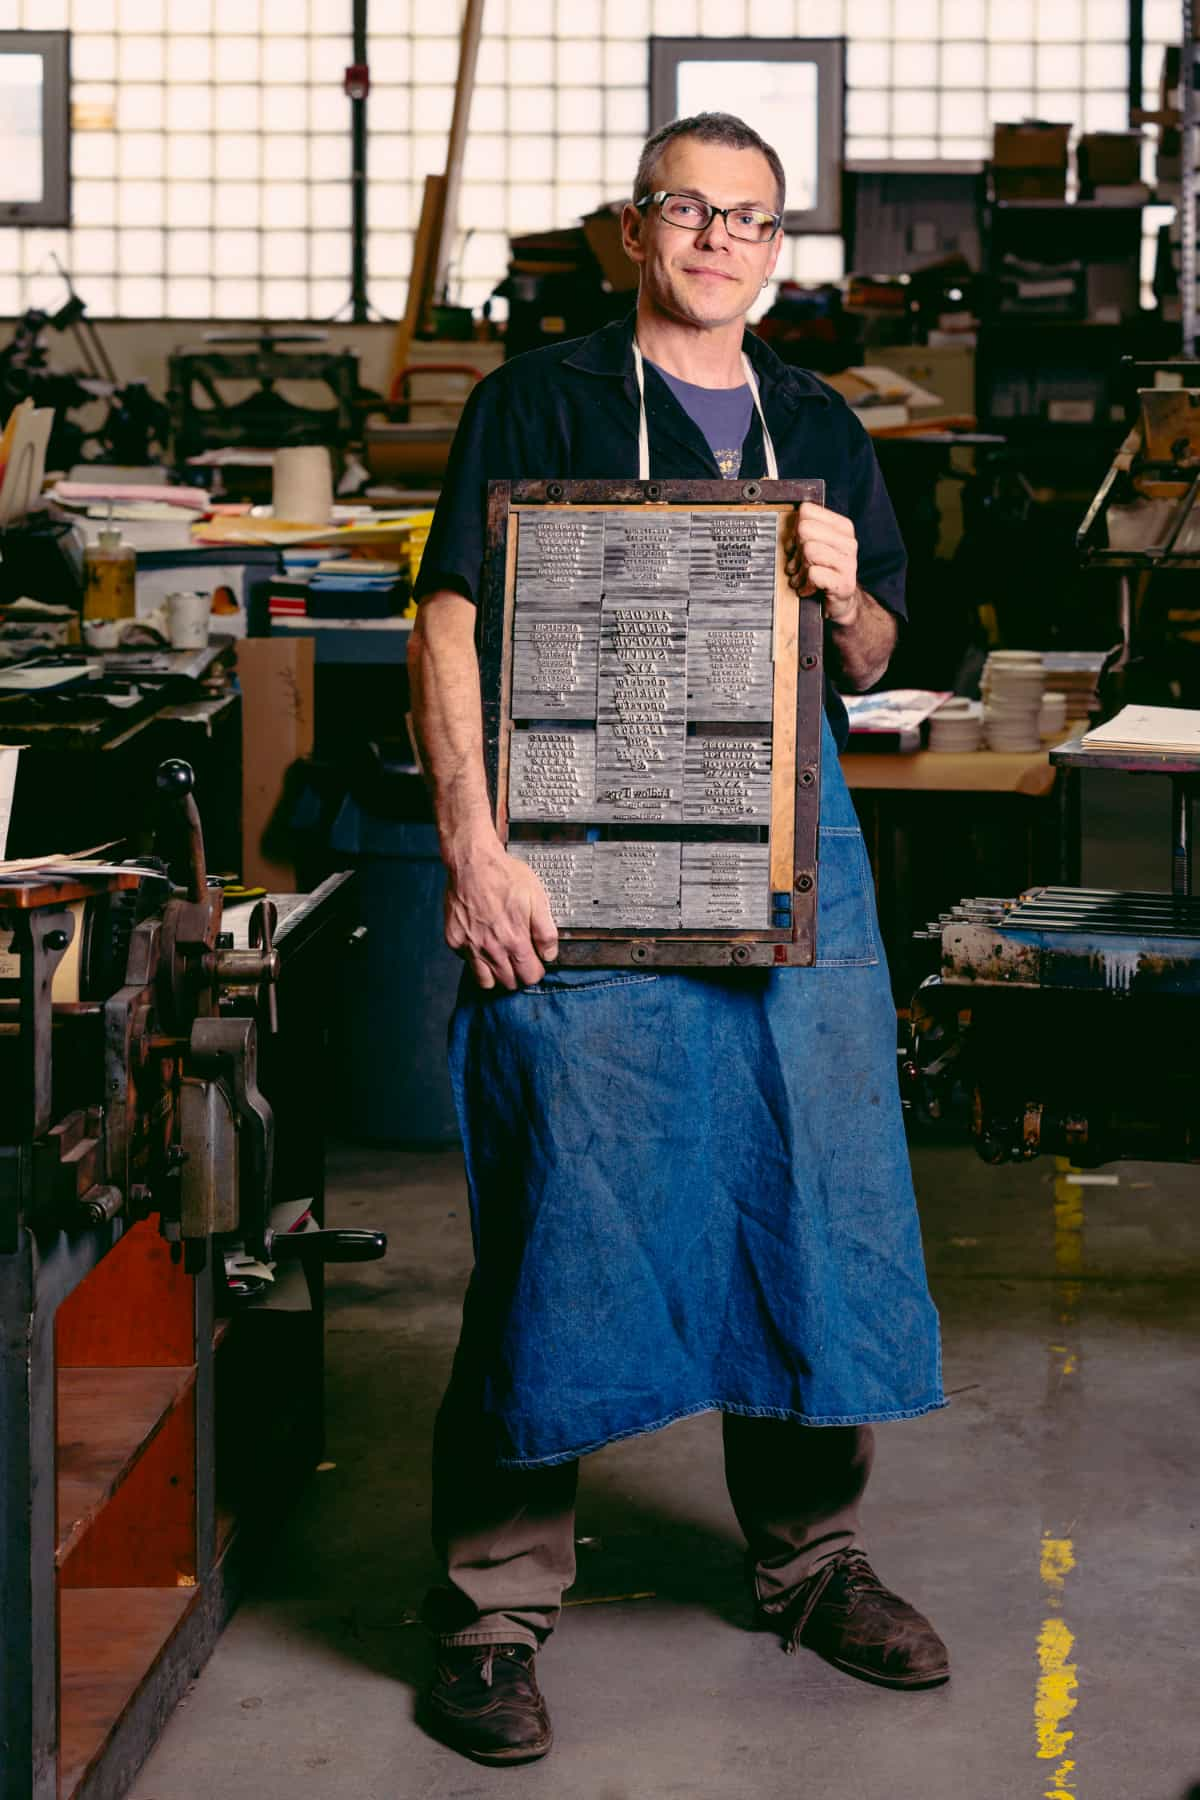 Dan Wood, Founder of DWRI Letterpress